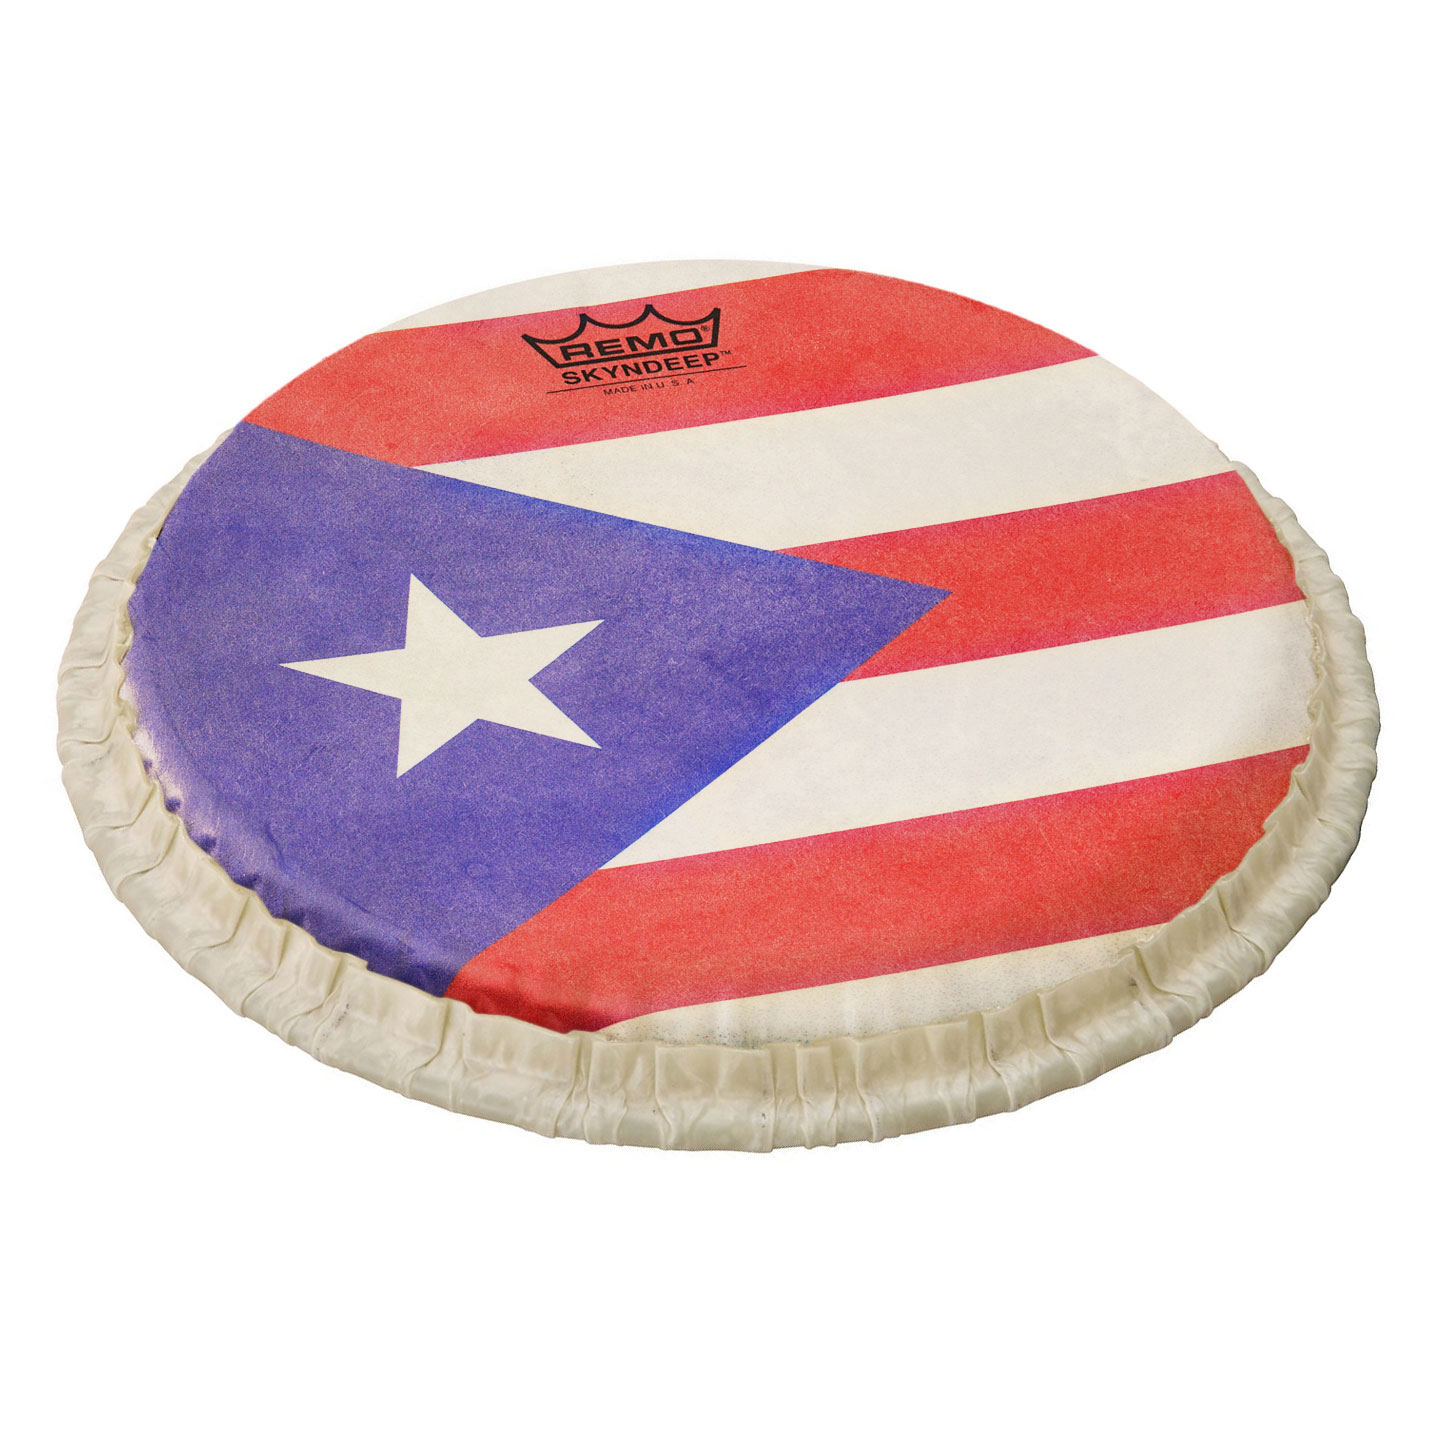 "Remo 12.5"" Tucked Skyndeep Conga Drum Head with Puerto Rican Flag Graphic"